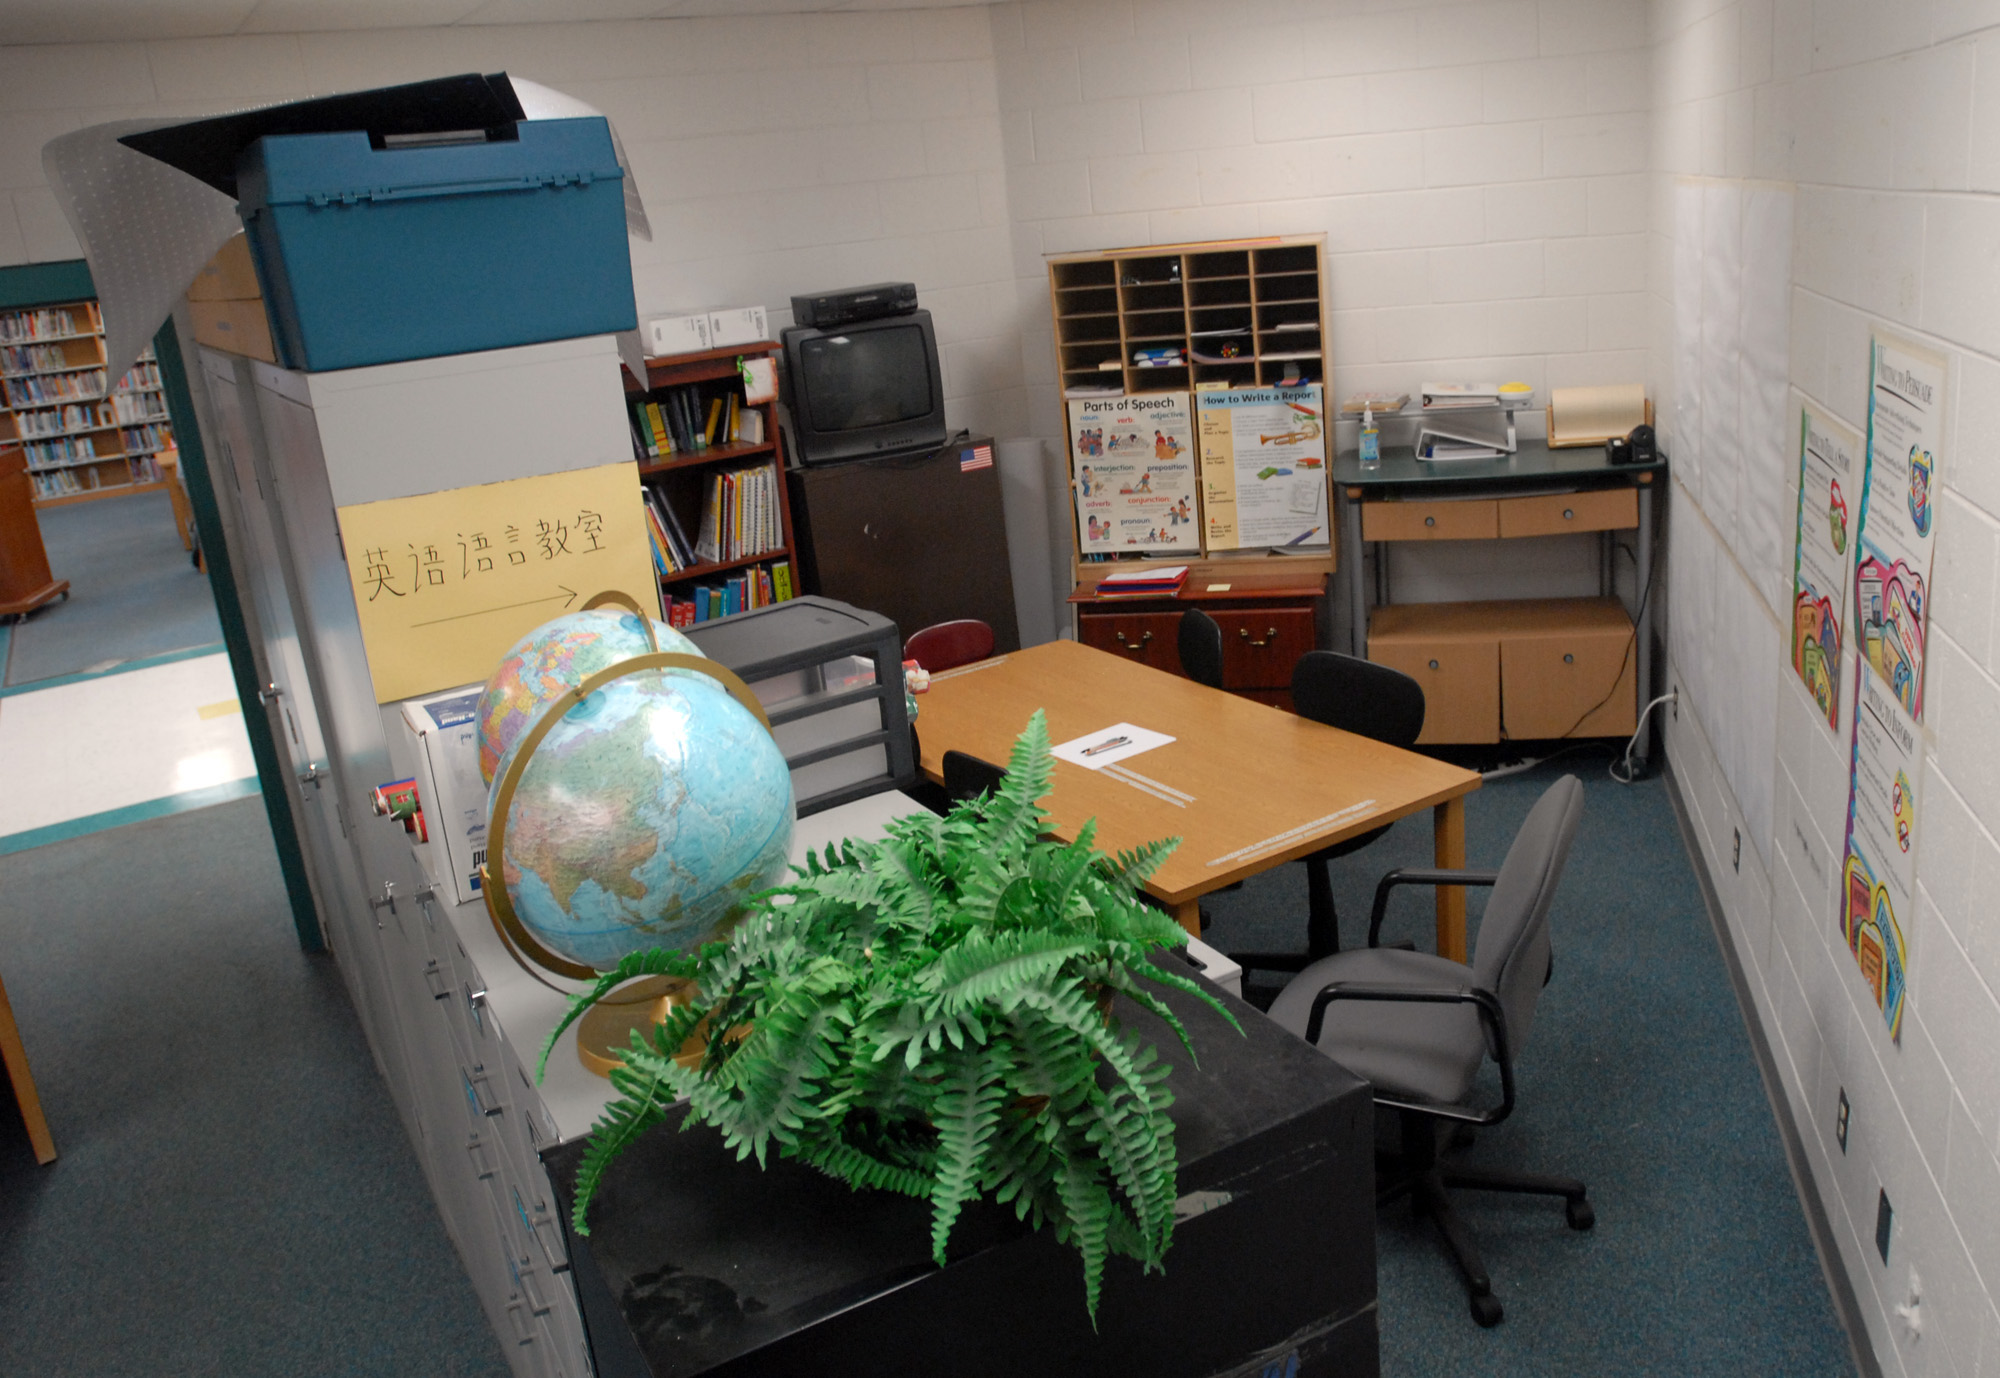 File cabinets divide this space at this public school in Flowood, Miss., designed as storage for the adjacent library and made into a makeshift classroom for English as a Second Language (ESL) students.   File Photo/Clarion Ledger